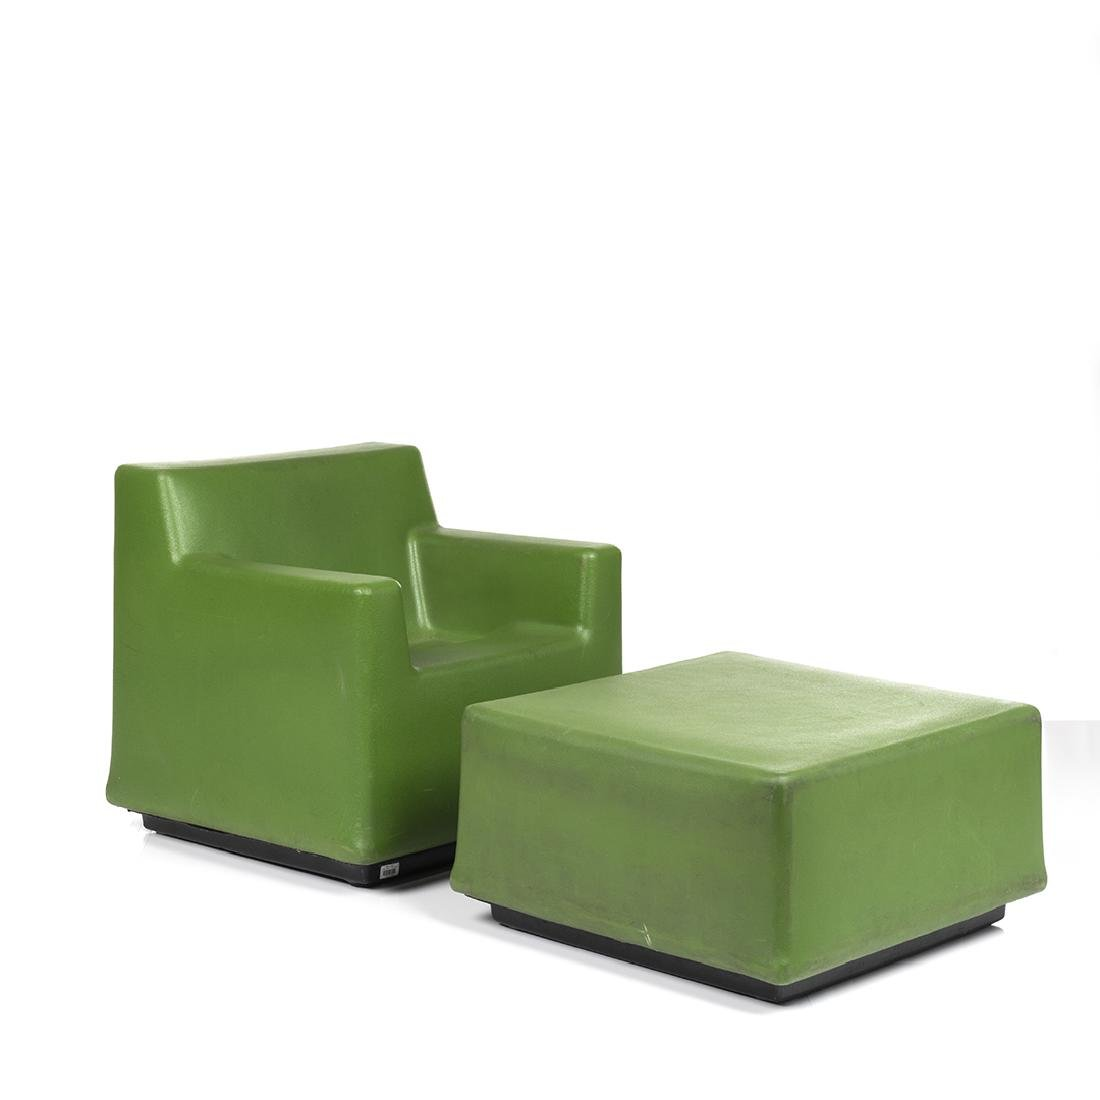 Moduform Chair and Ottoman